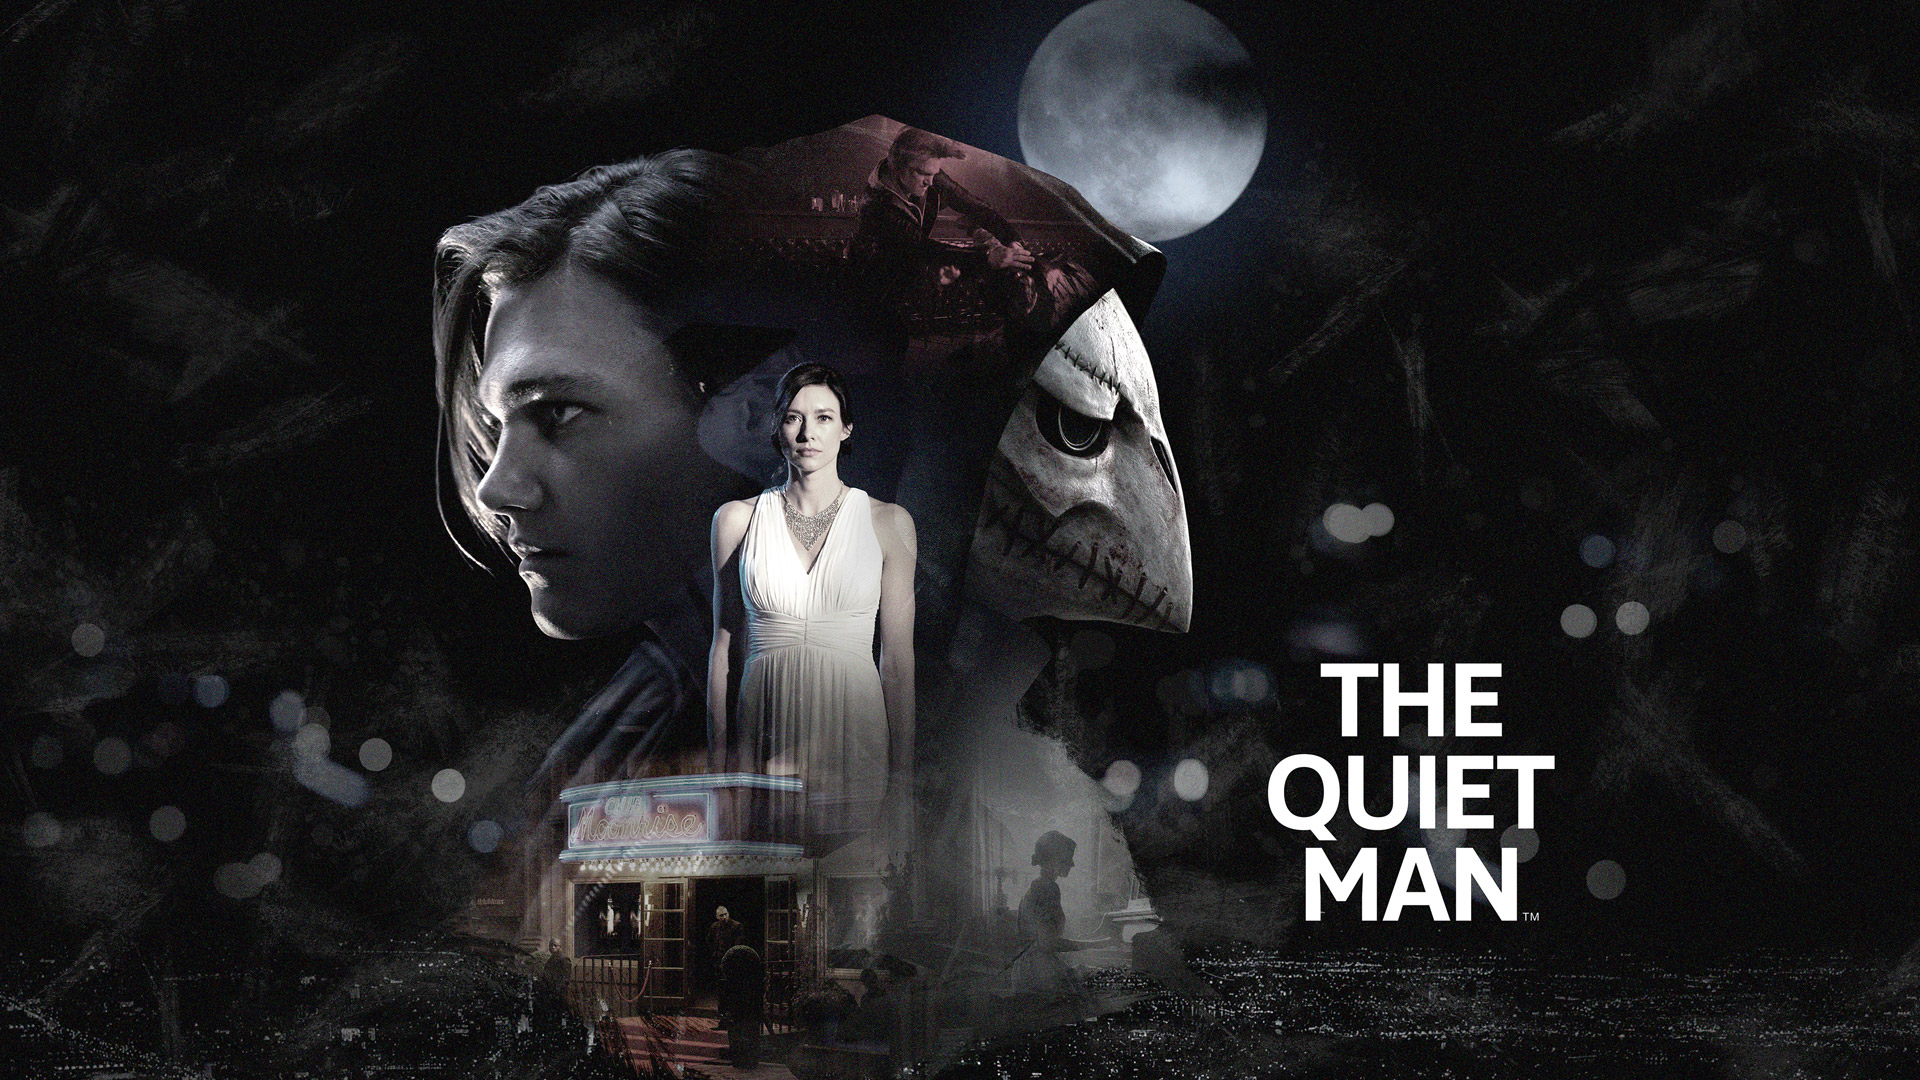 Free The Quiet Man Wallpaper in 1920x1080